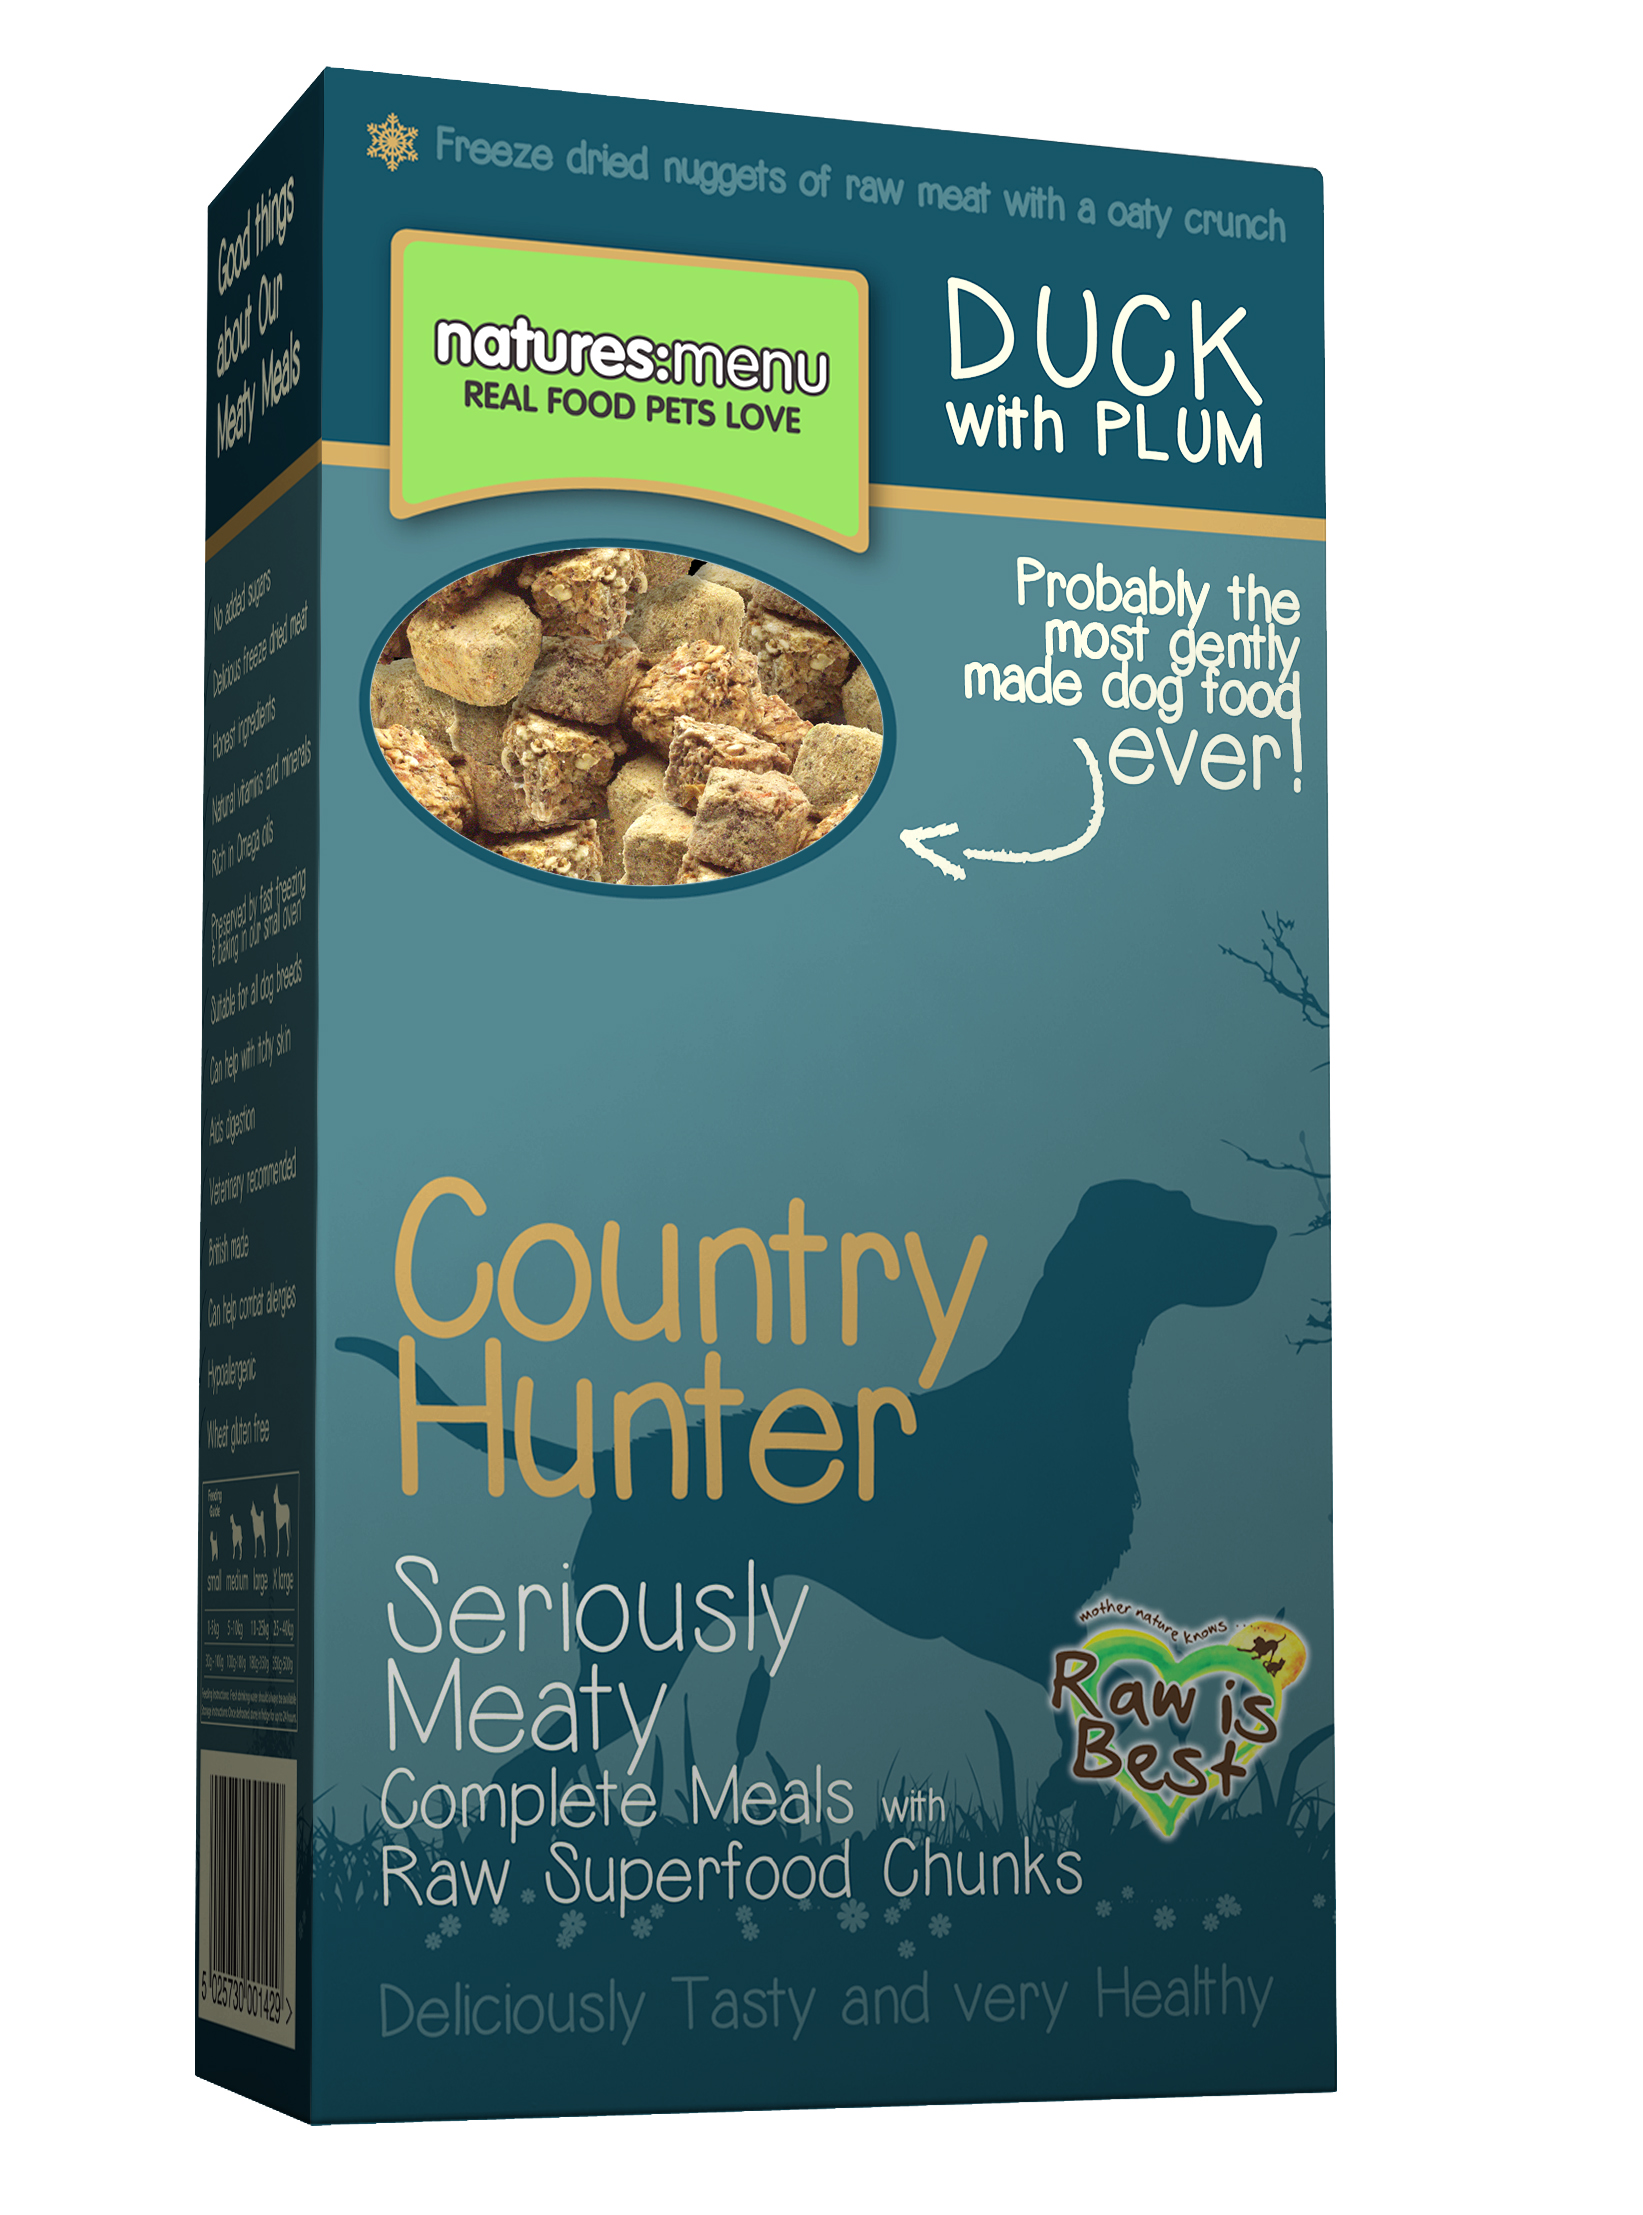 The Most Easily Digestible Dog Food